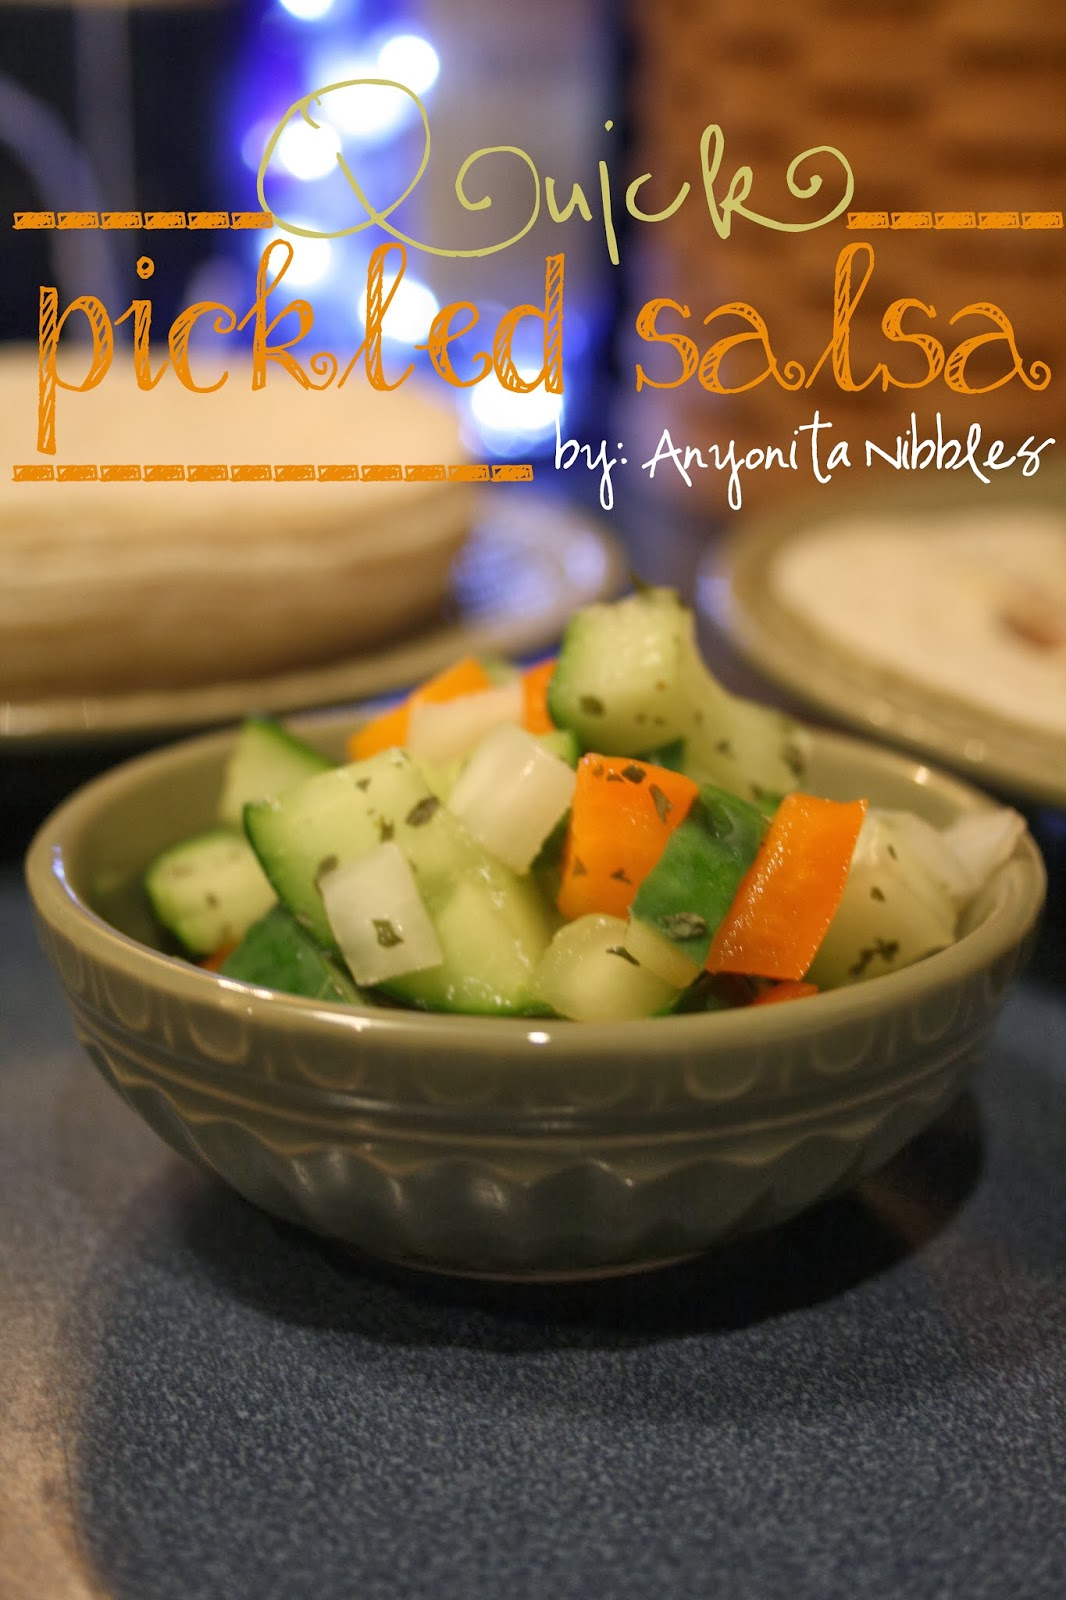 Quick Pickled Salsa for Fish Tacos from www.anyonita-nibbles.com